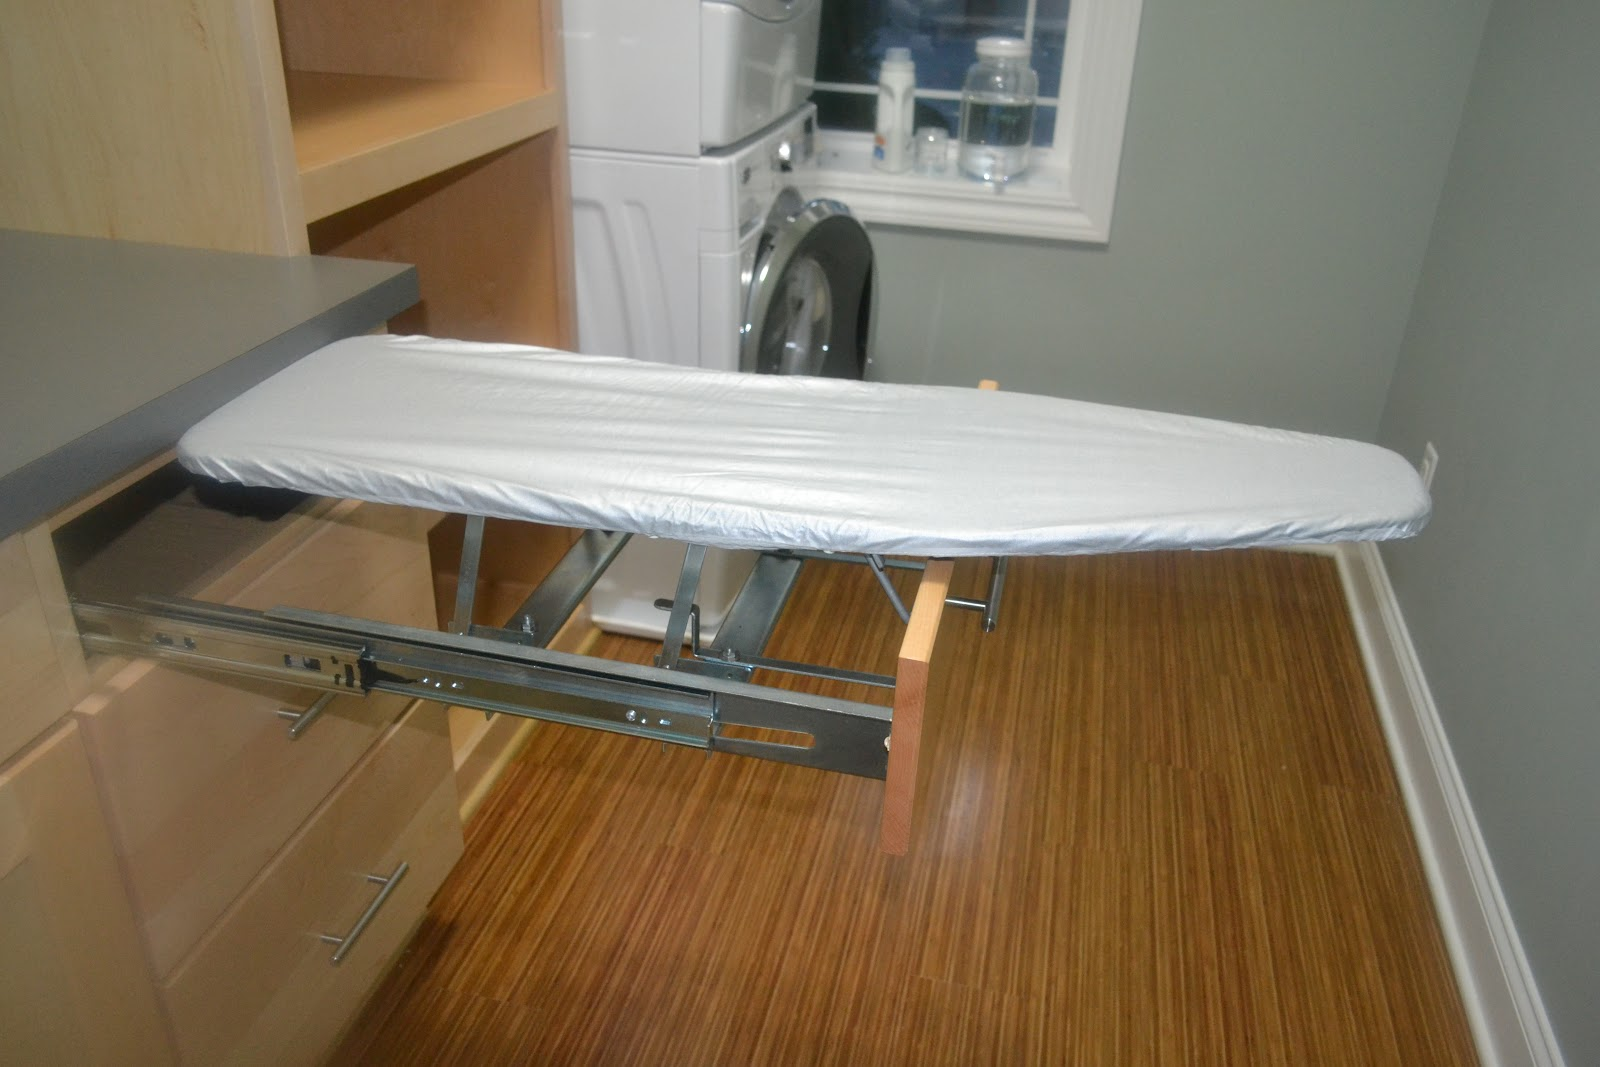 Fold up ironing board - For A Variety Of Reasons The Board Has Been Sitting In Our Laundry Room For The Last Three Months I Think It S Safe To Say We Could Have Saved Ourselves A